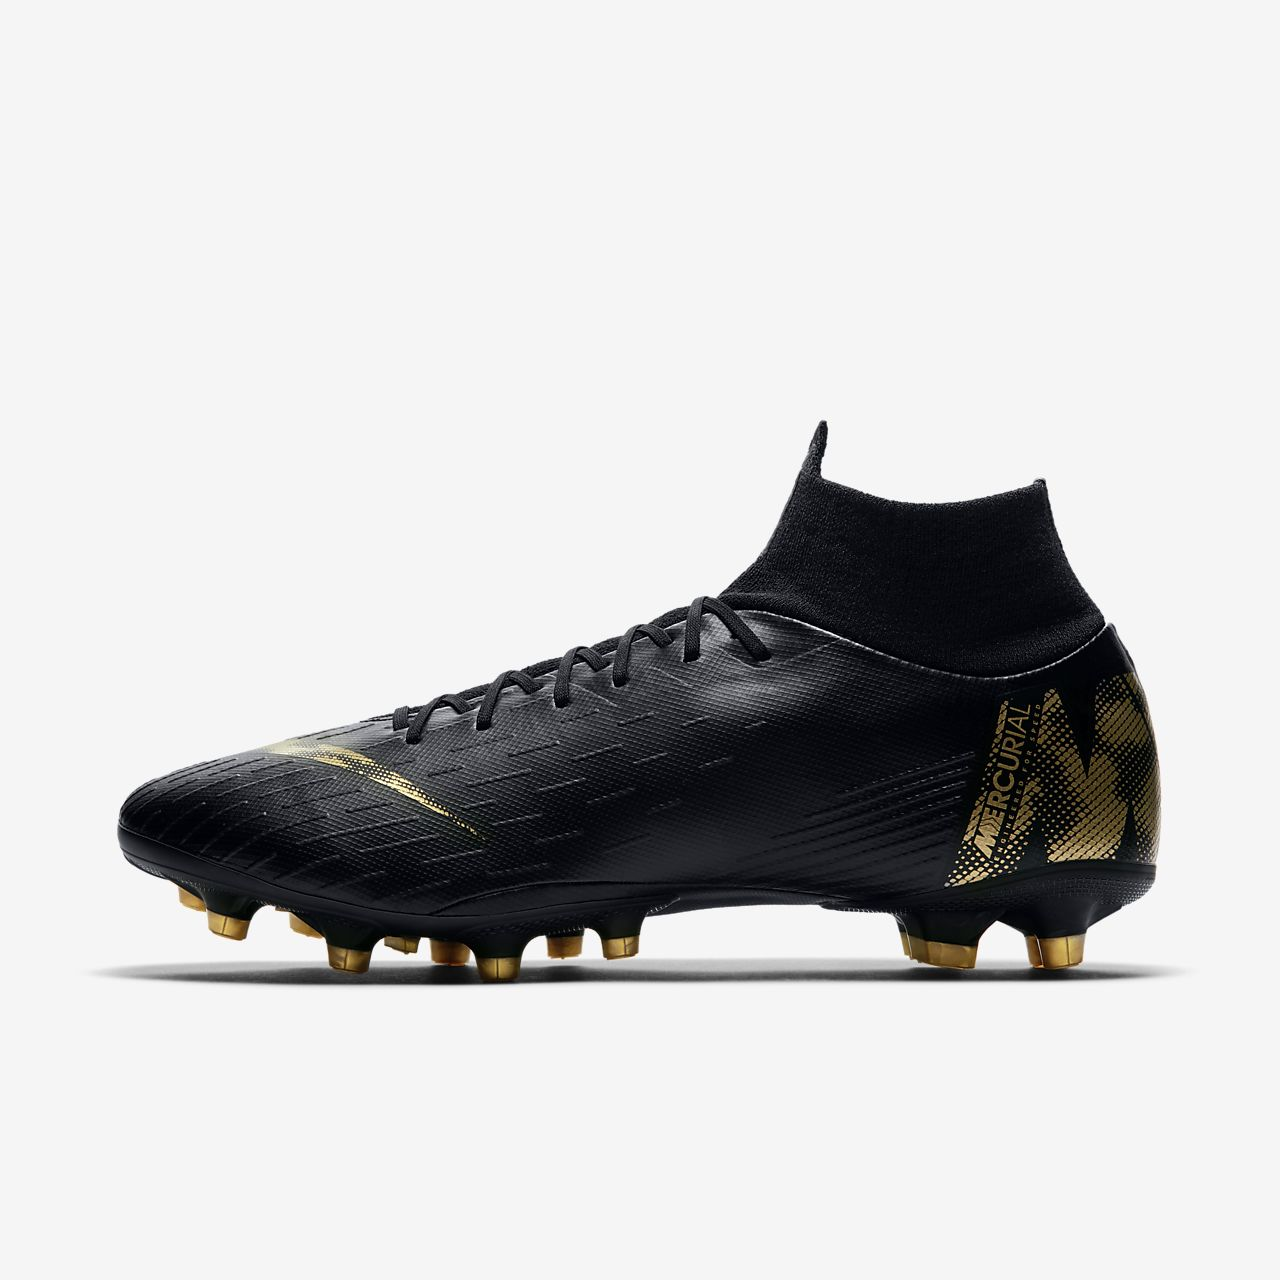 detailed look b3f2b 49209 ... Chaussure de football à crampons pour terrain synthétique Nike  Mercurial Superfly VI Pro AG-PRO